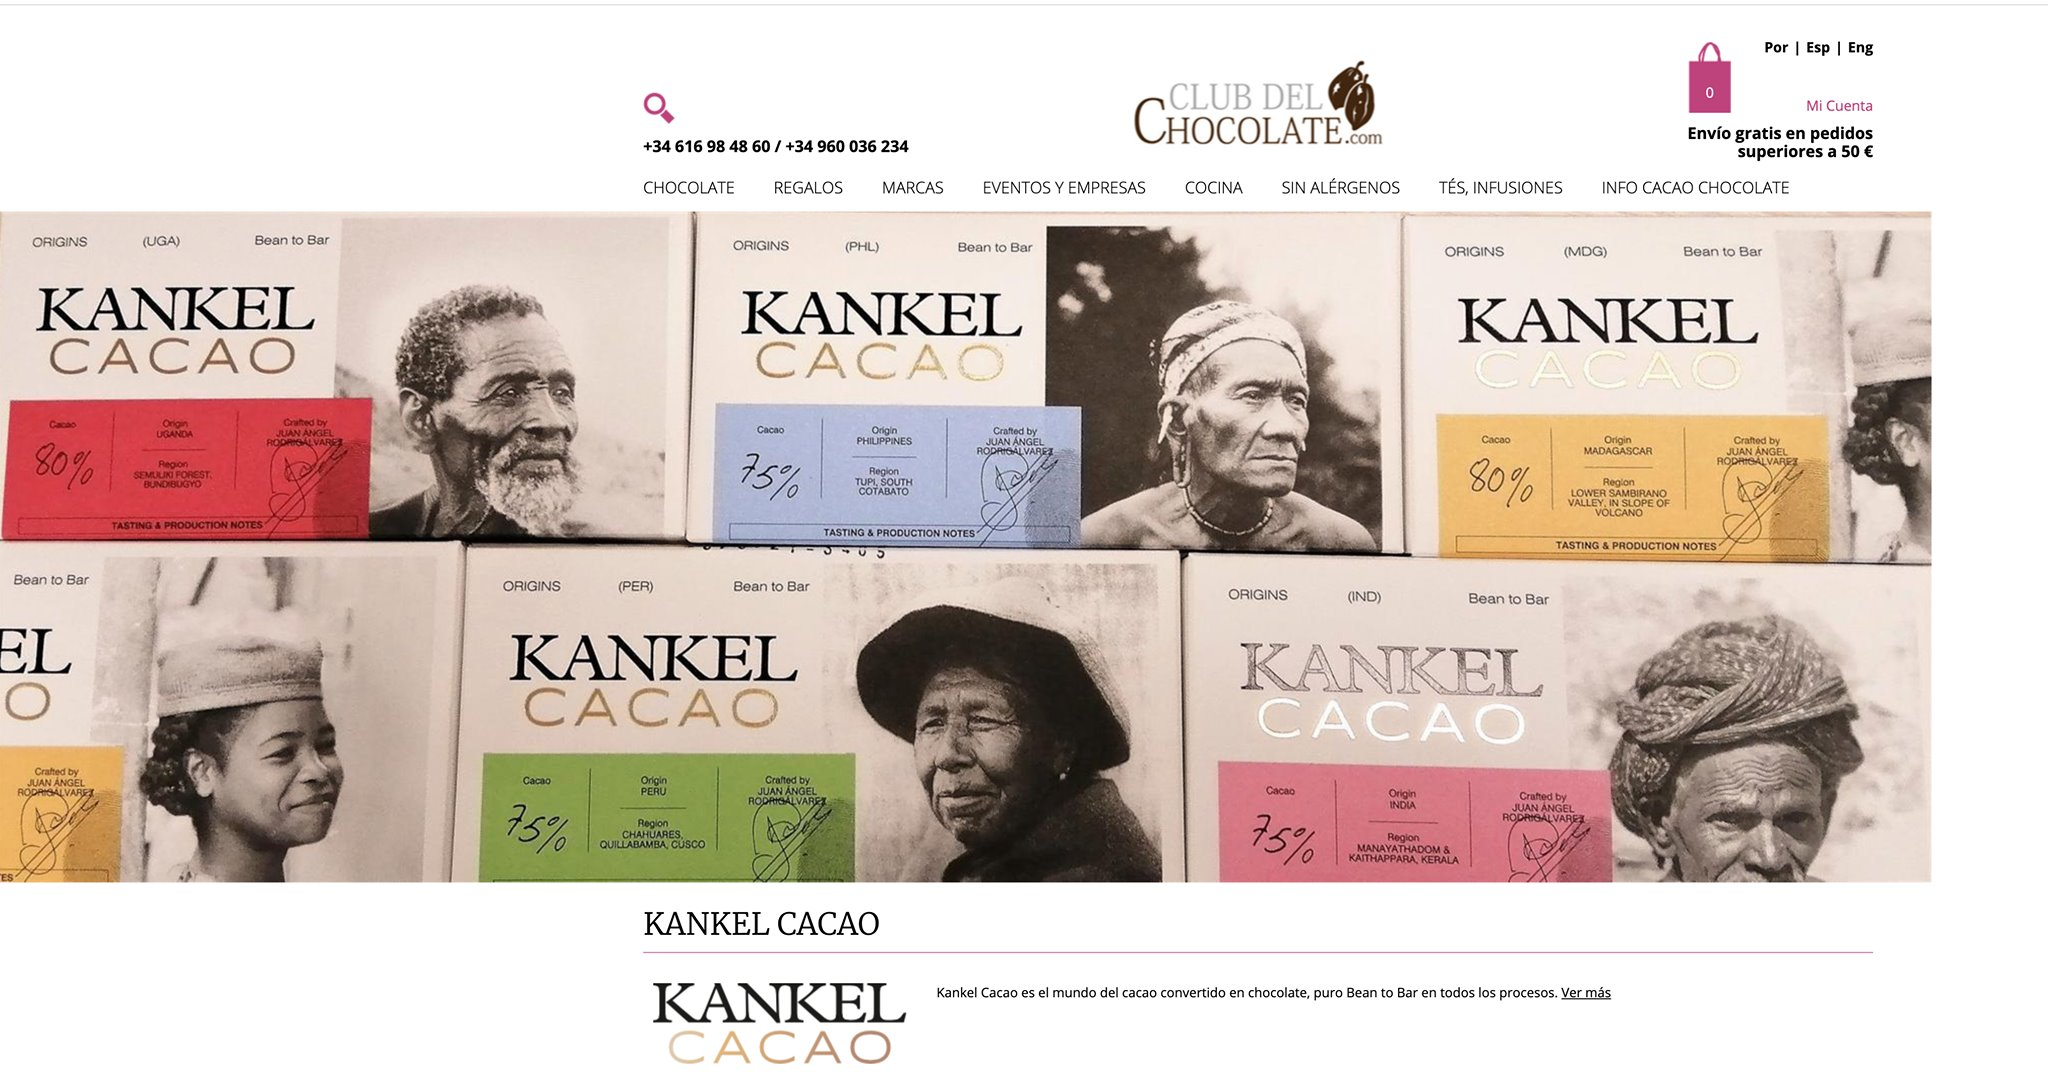 Kankel Cacao - Bean to Bar - Recorre el mundo del cacao - Club del chocolate